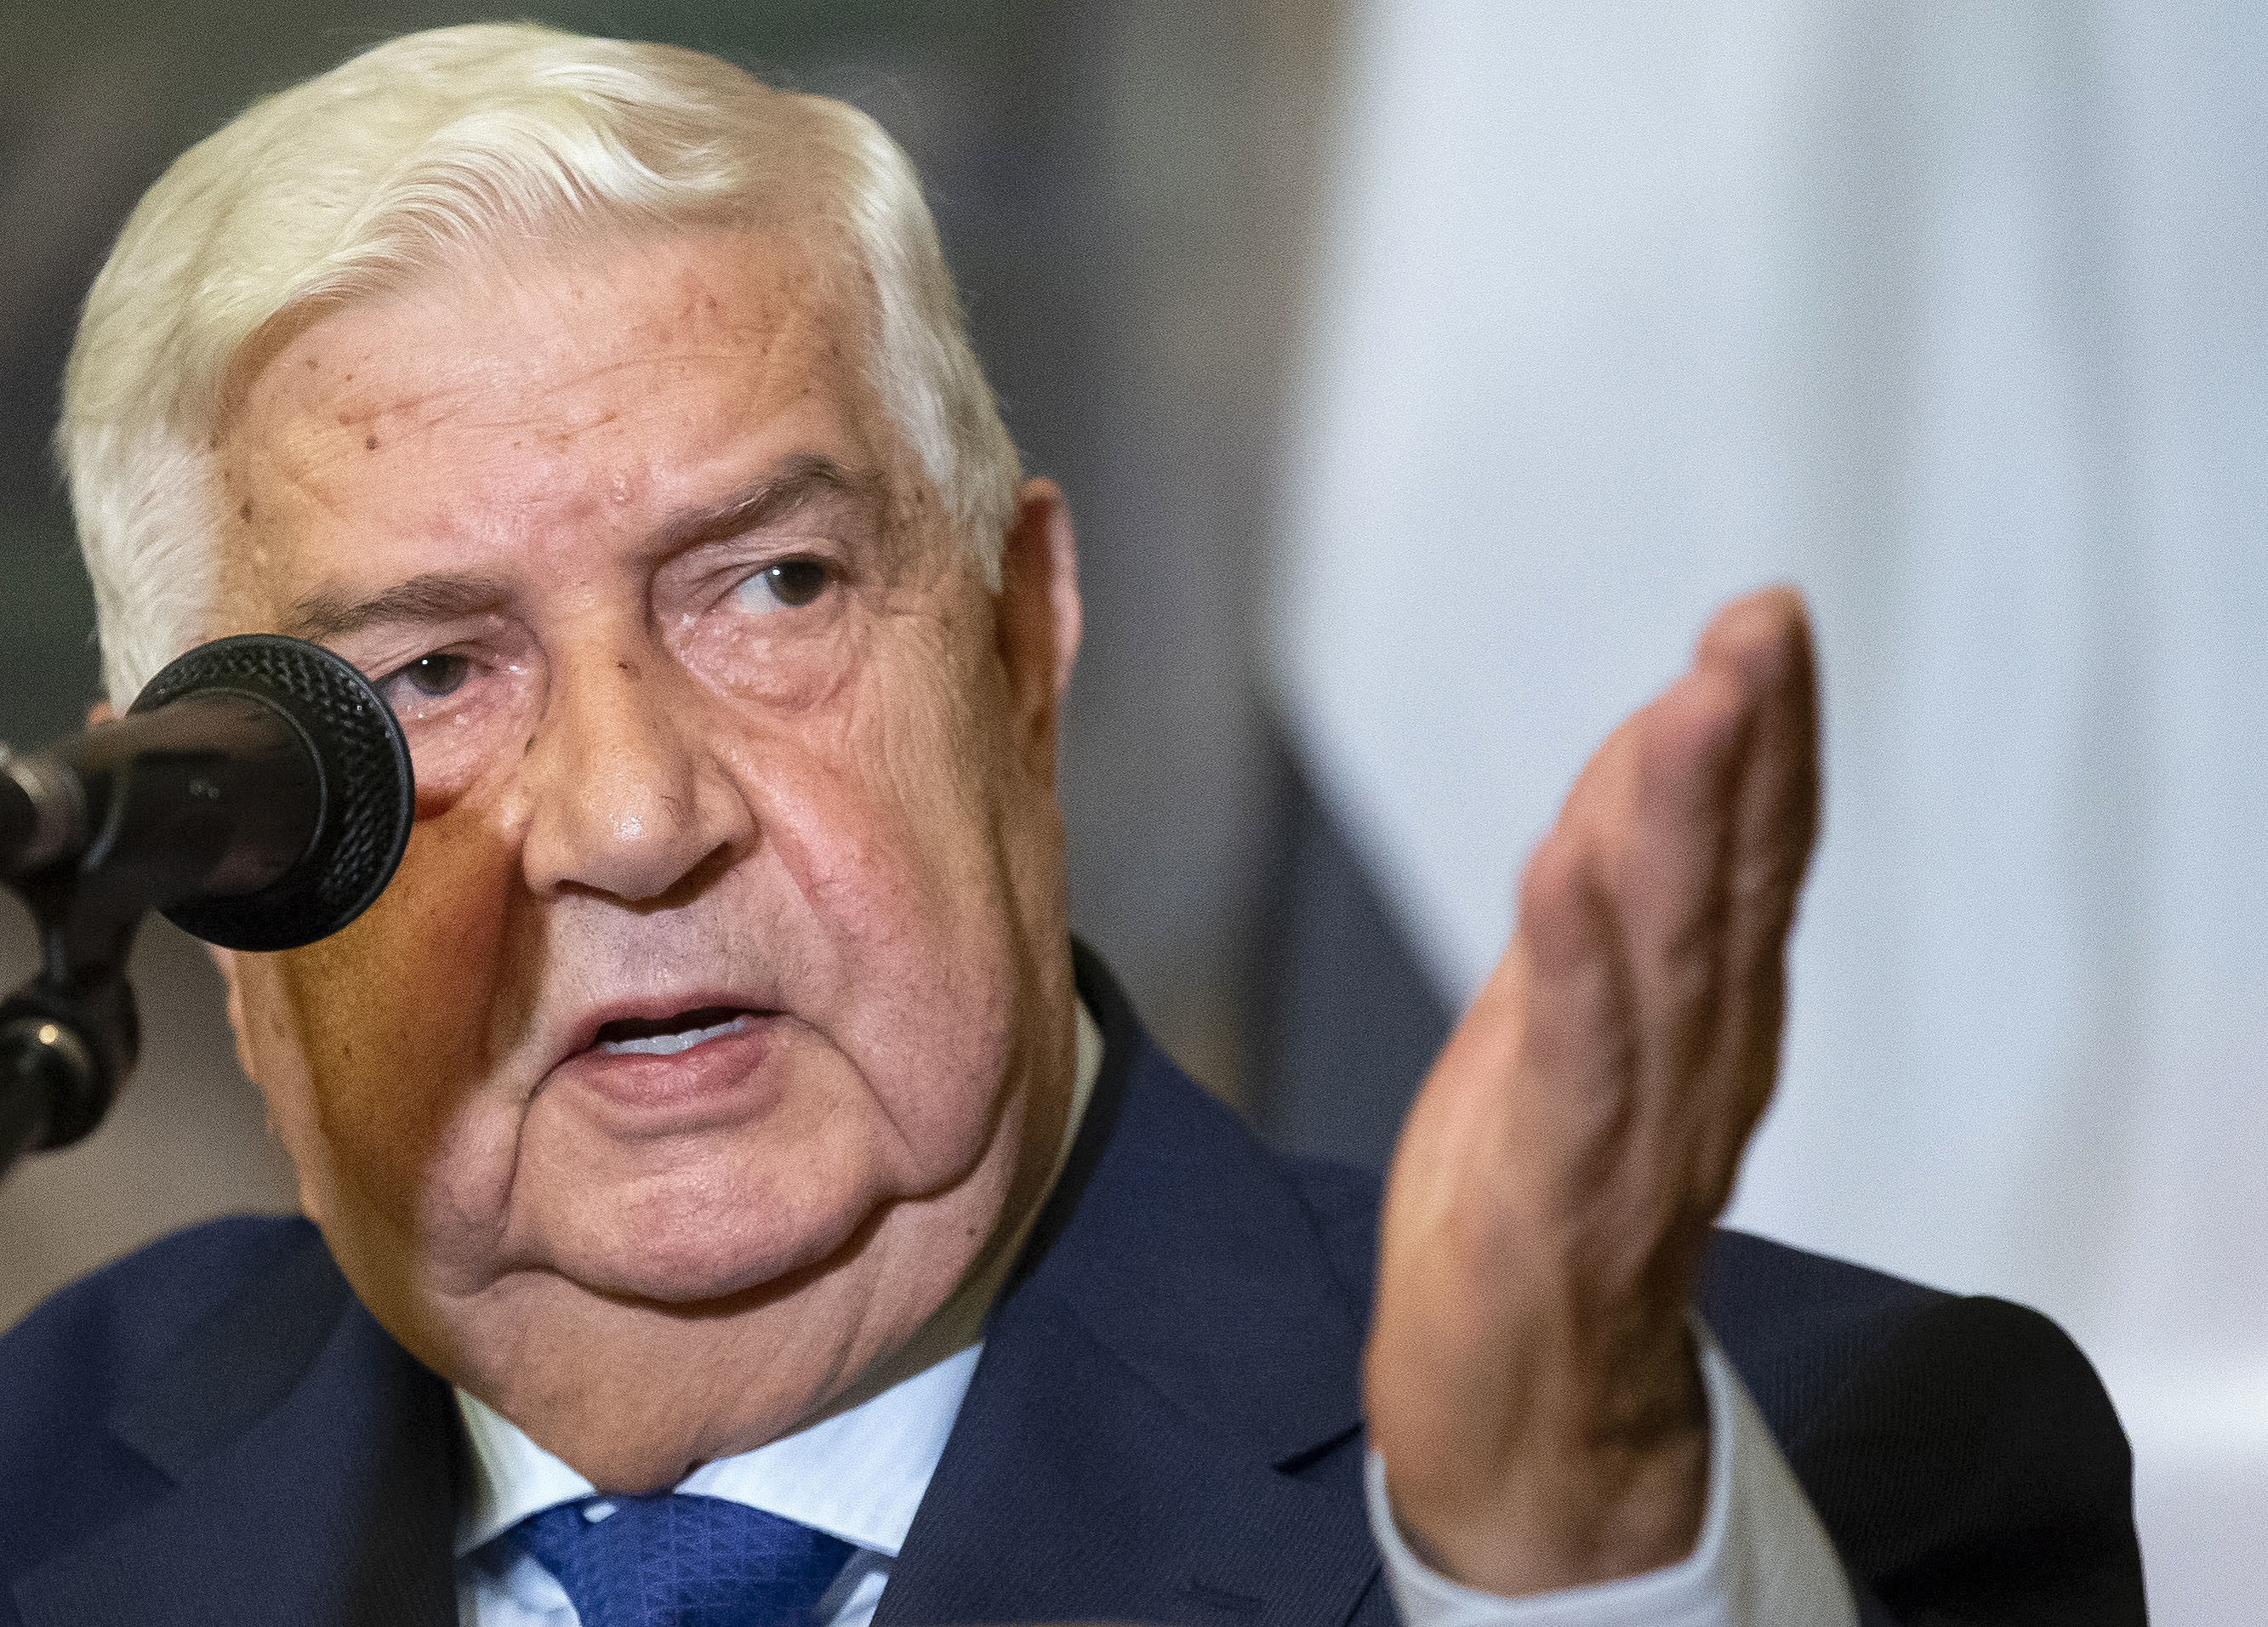 Syrian Foreign Minister Walid Muallem gestures as speaks to the media during the joint news conference with Russian Foreign Minister Sergey Lavrov, following their talks, in Moscow, Russia, Thursday, Aug. 30, 2018. Muallem's Moscow visit comes as Moscow and Damascus are increasingly worried about a possible airstrike on government positions in Syria. (AP Photo/Alexander Zemlianichenko)